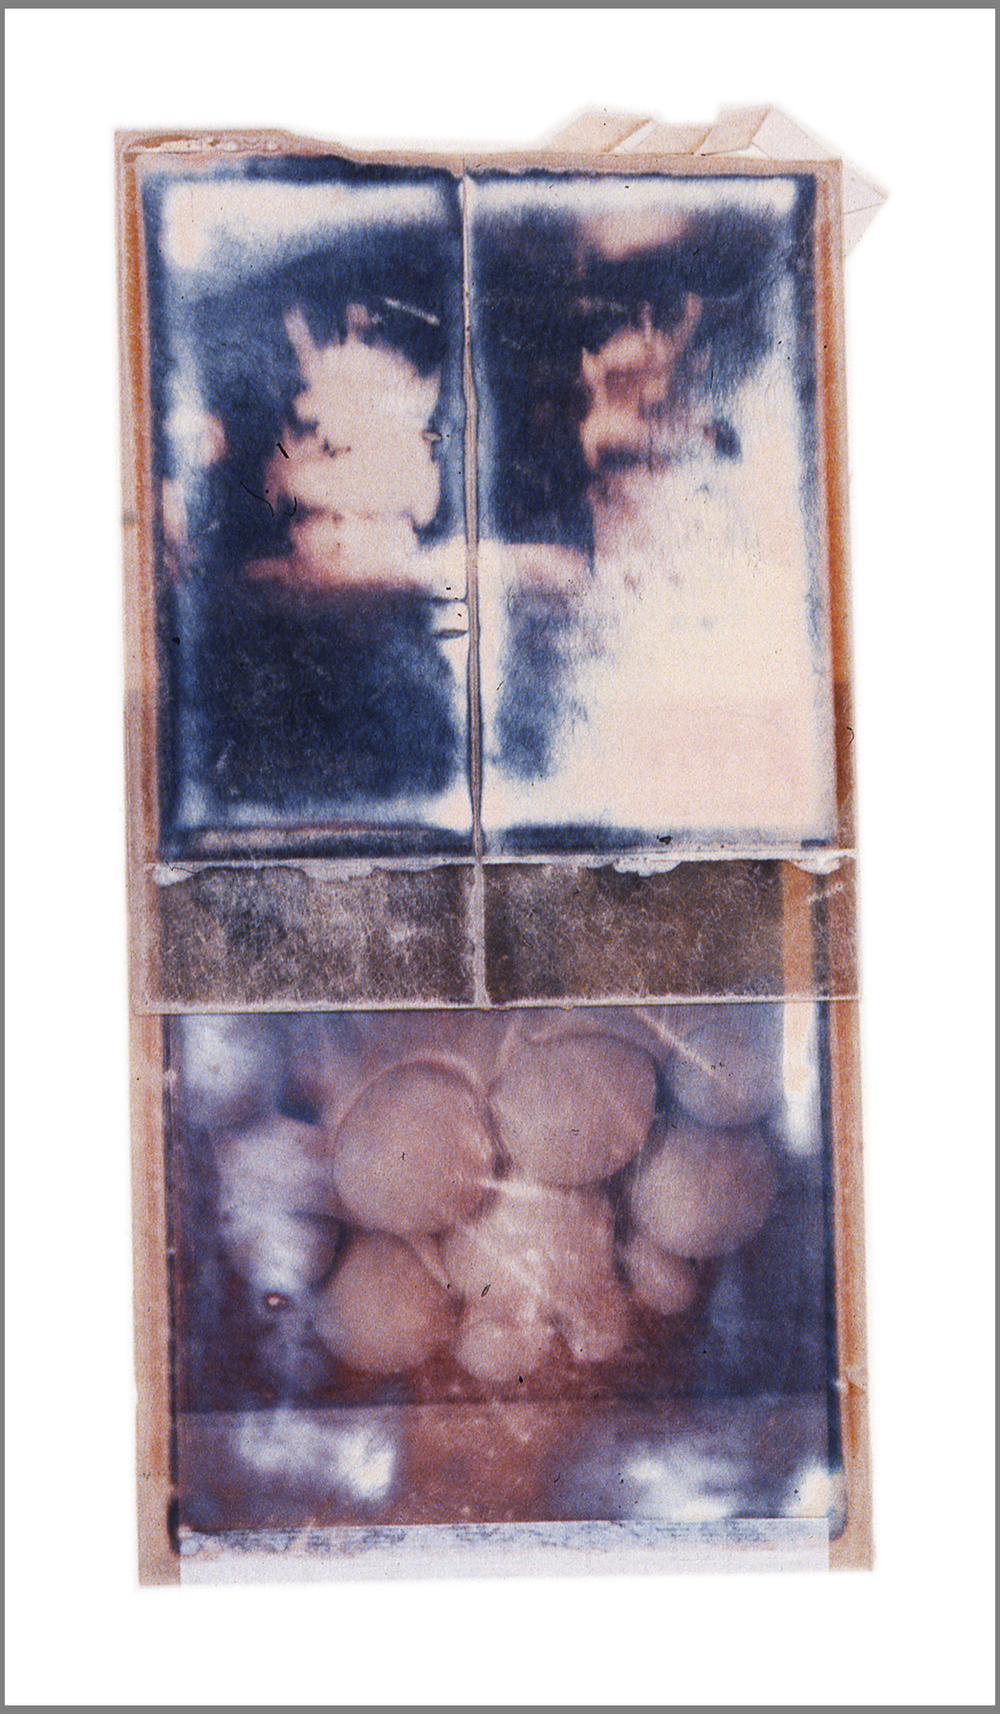 1975  Polaroid SX70 film and mixed media, 6x3.5""